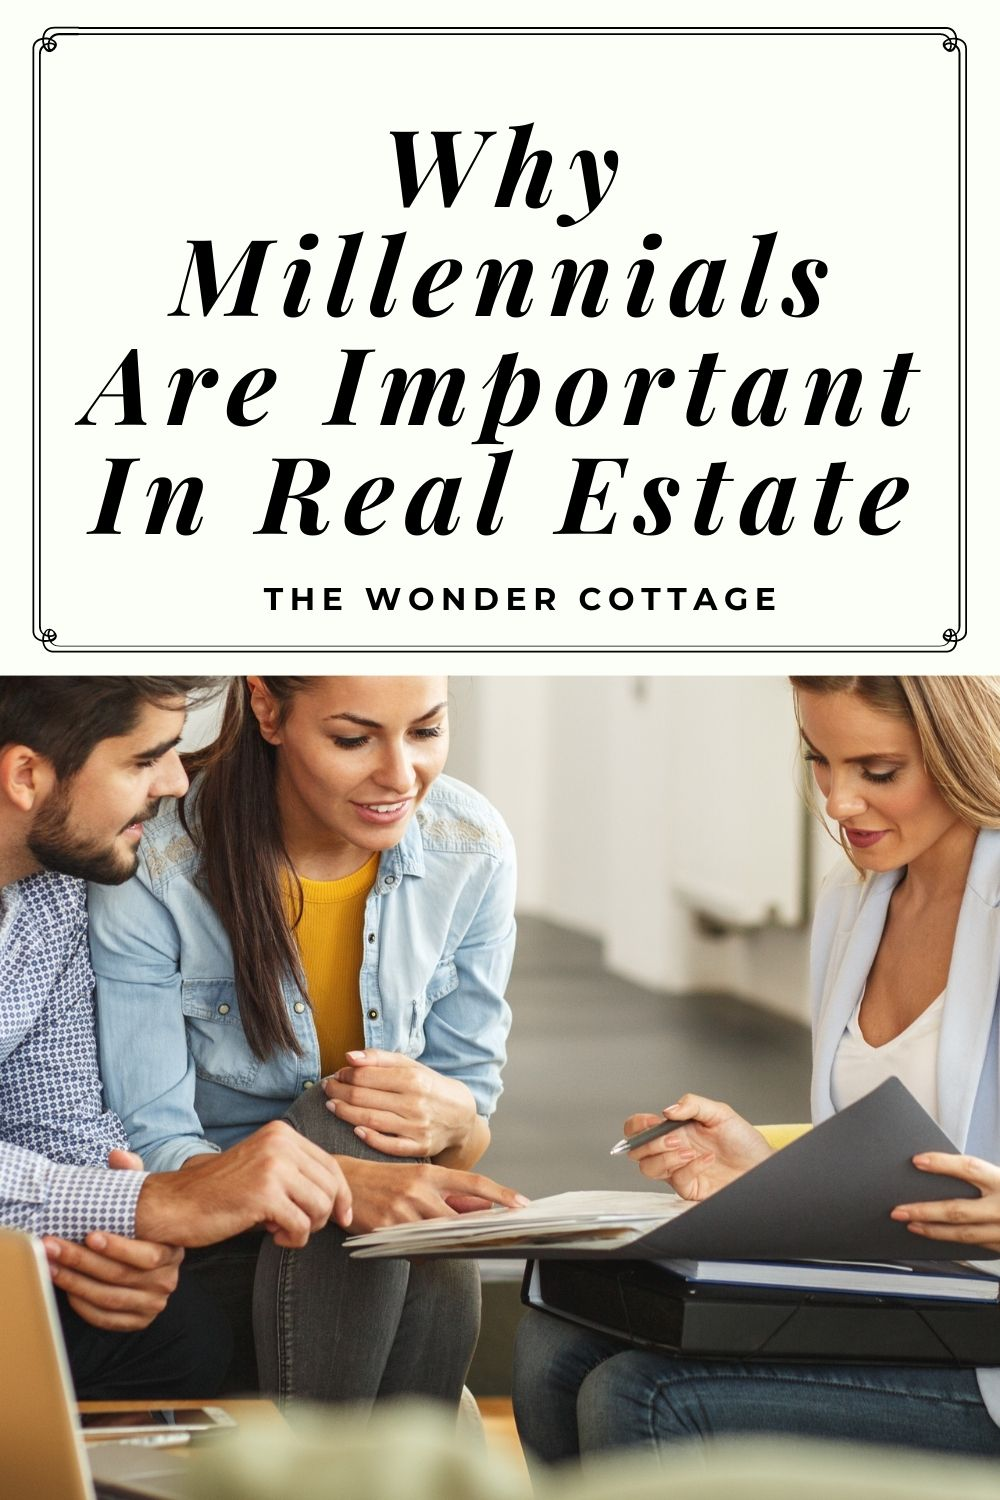 Why millennials are important in real estate